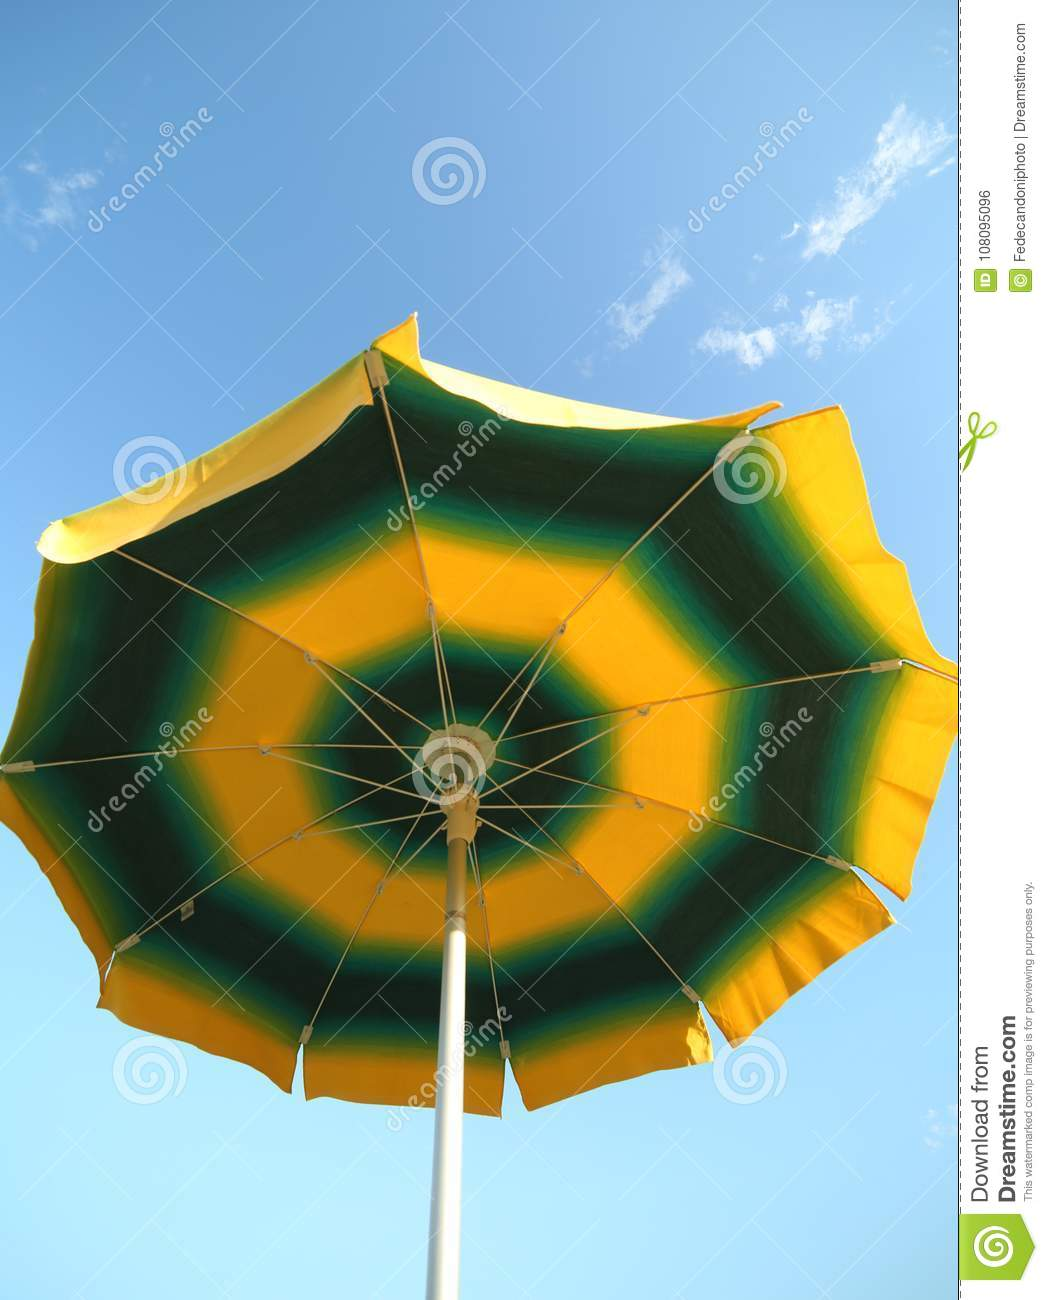 Beach Umbrella P Ographed From Below